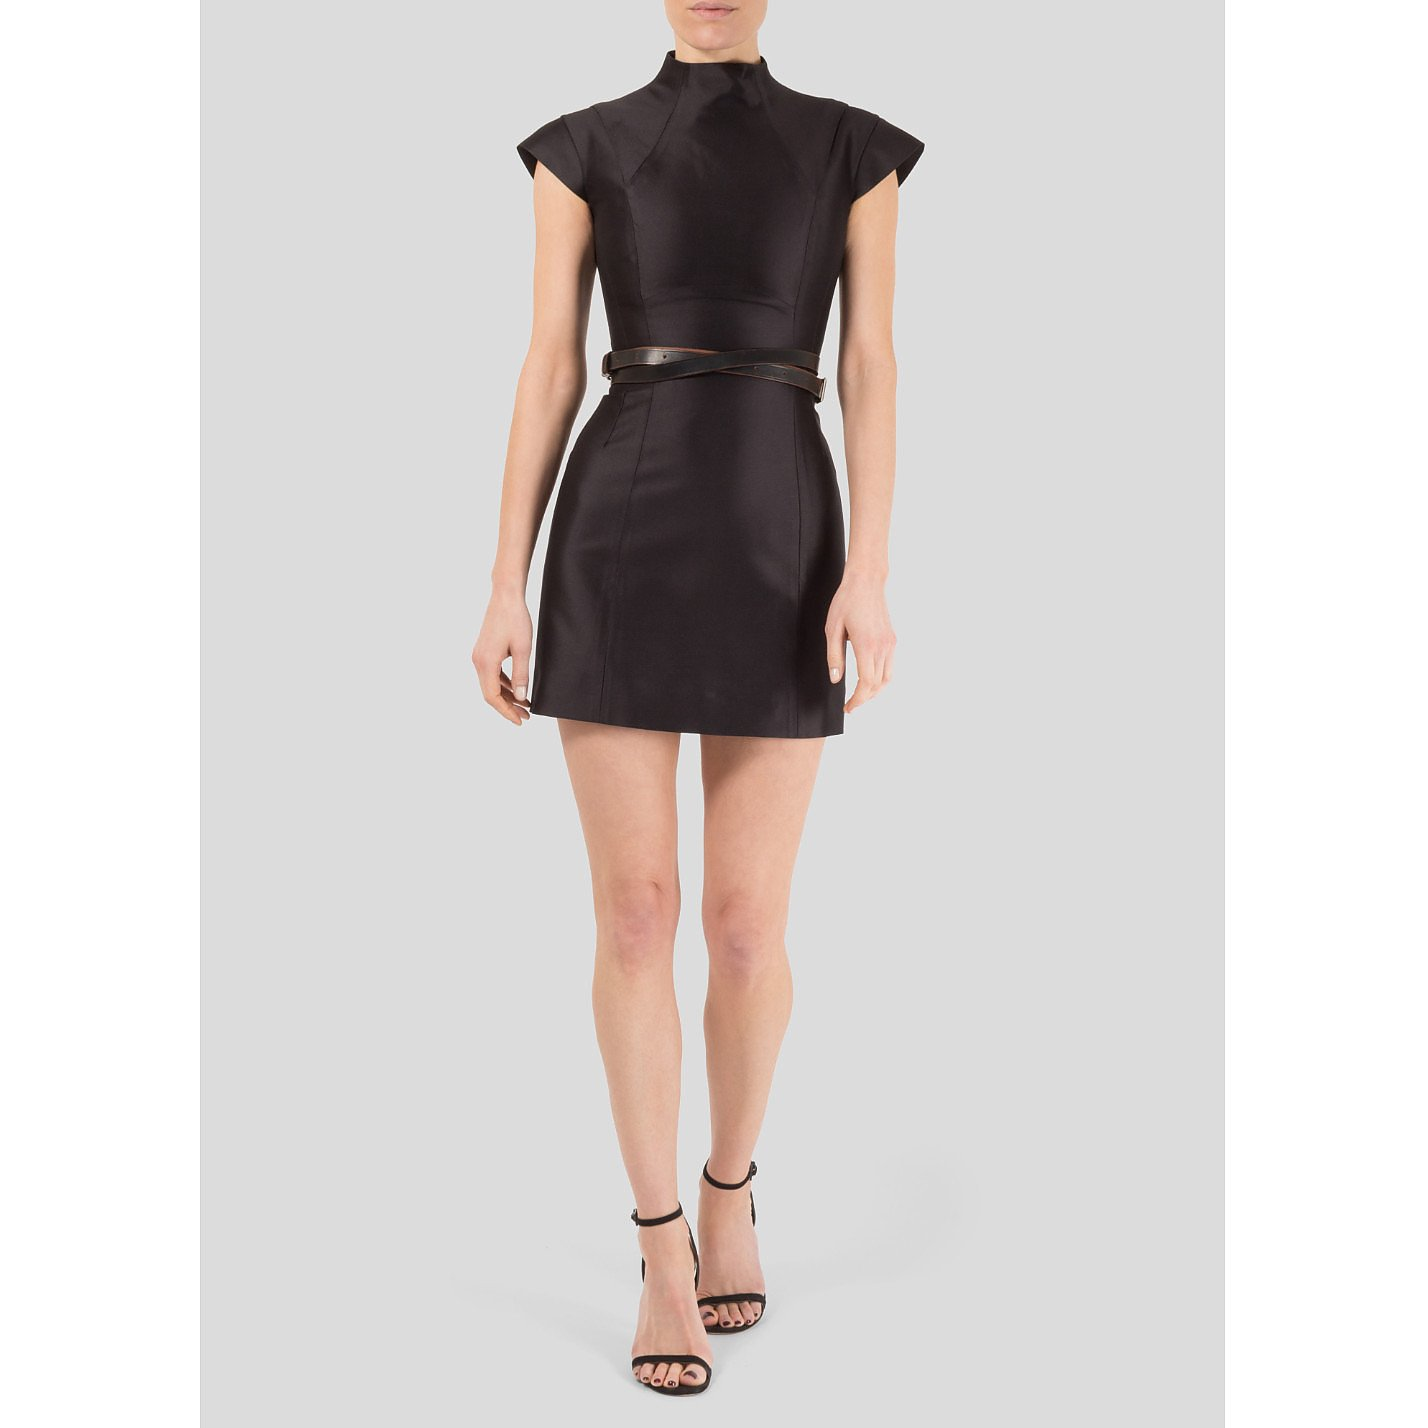 Victoria Beckham High Neck Mini Dress